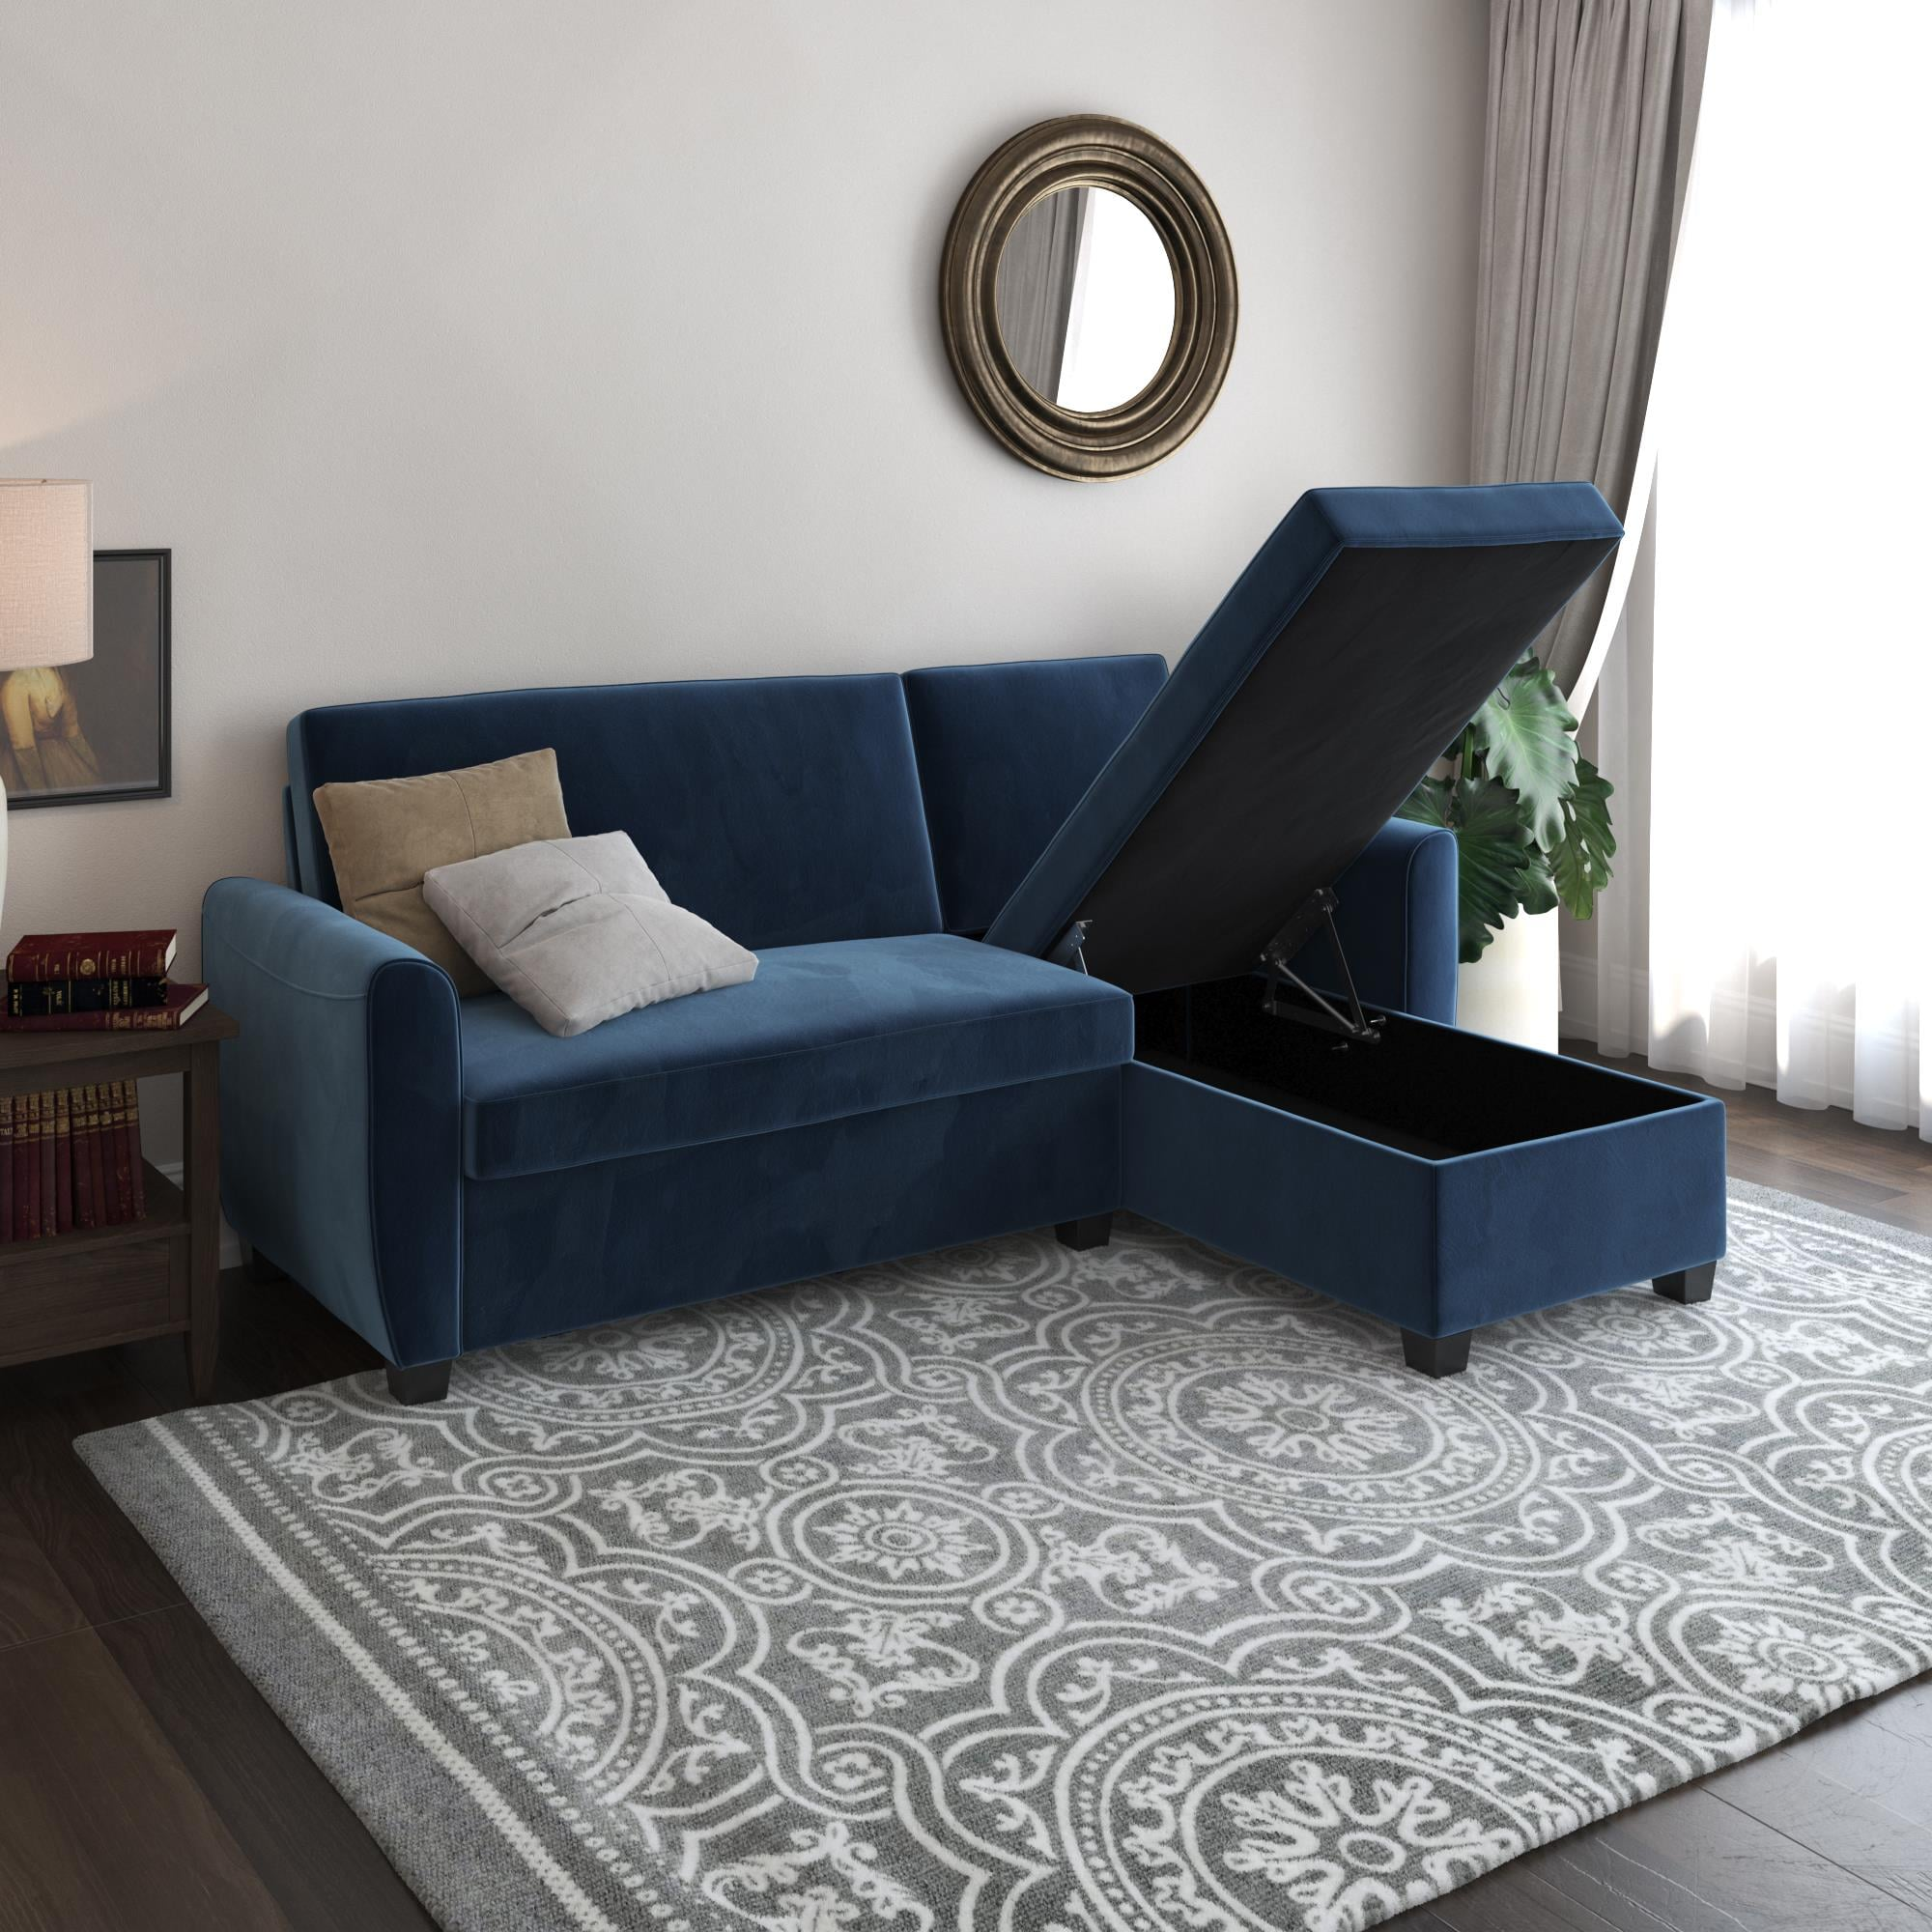 Dhp Noah Sectional Sofa Bed With Storage 11 Gorgeous Velvet